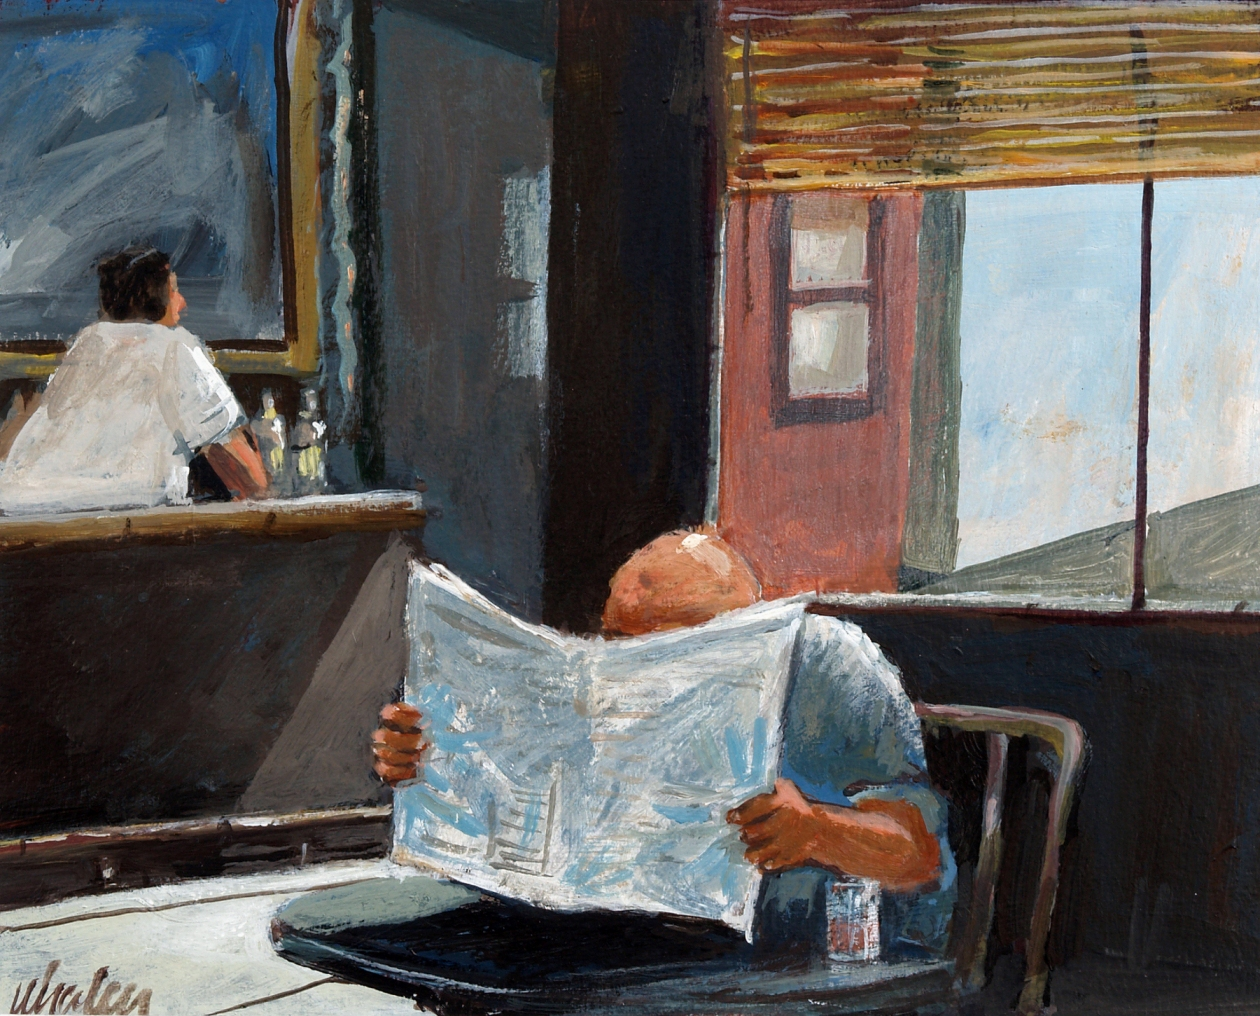 'The Morning Paper,' a painting by Joseph Whalen, was part of the Niagara Frontier Art Exhibit at the Kenan Center in Lockport.